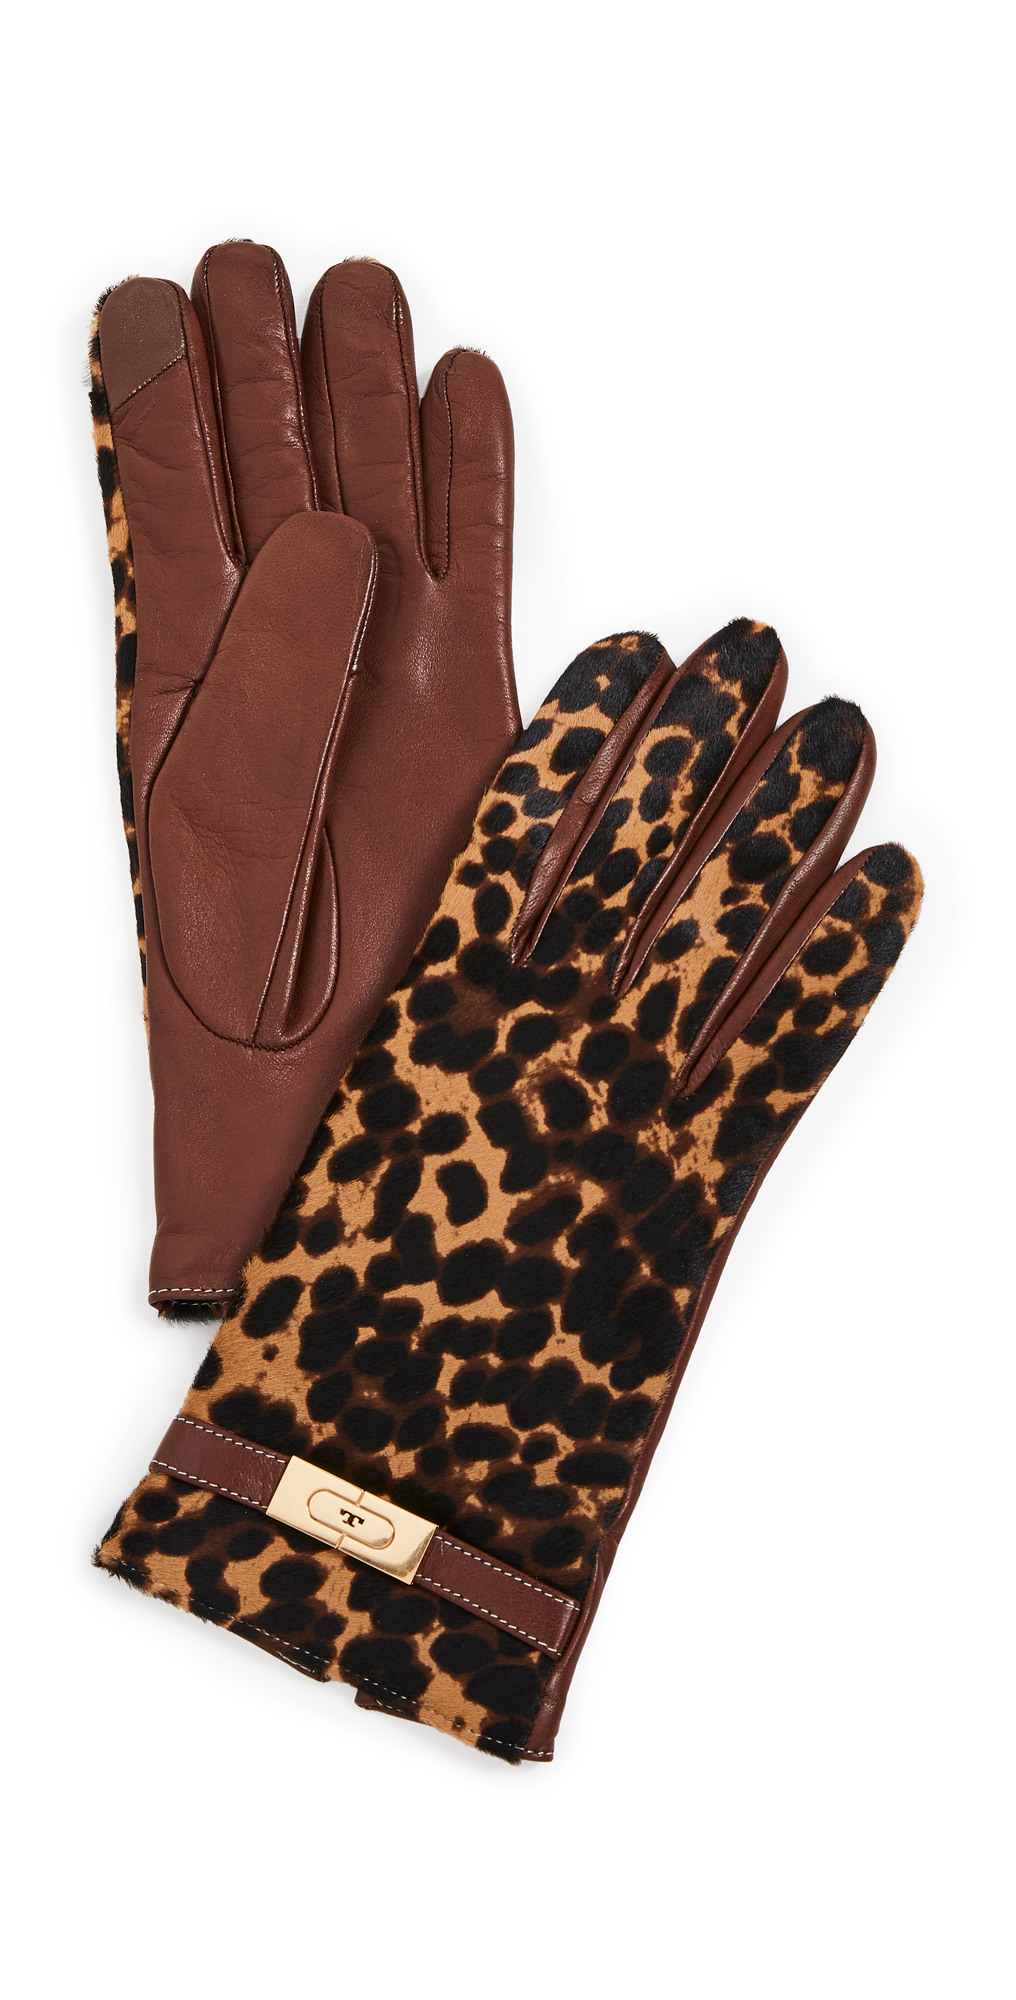 Tory Burch Leopard Lee Lock Gloves